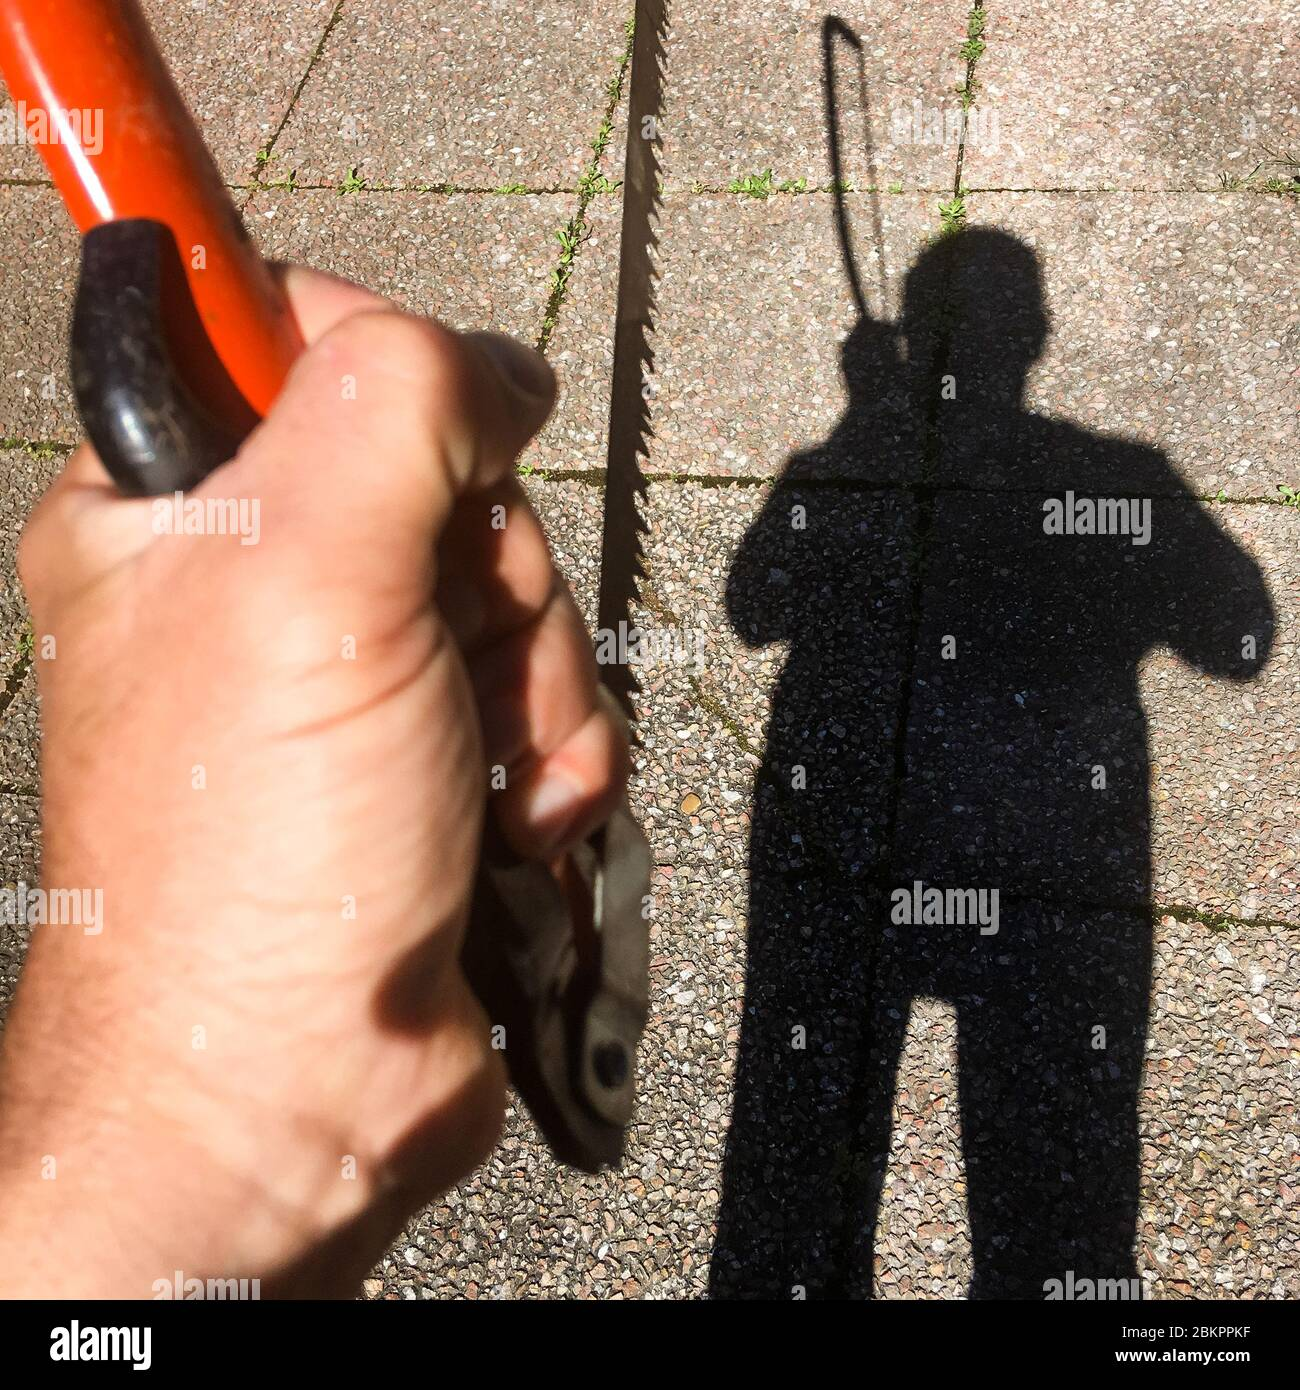 Shadow of a man holding a saw, Bron, France Stock Photo